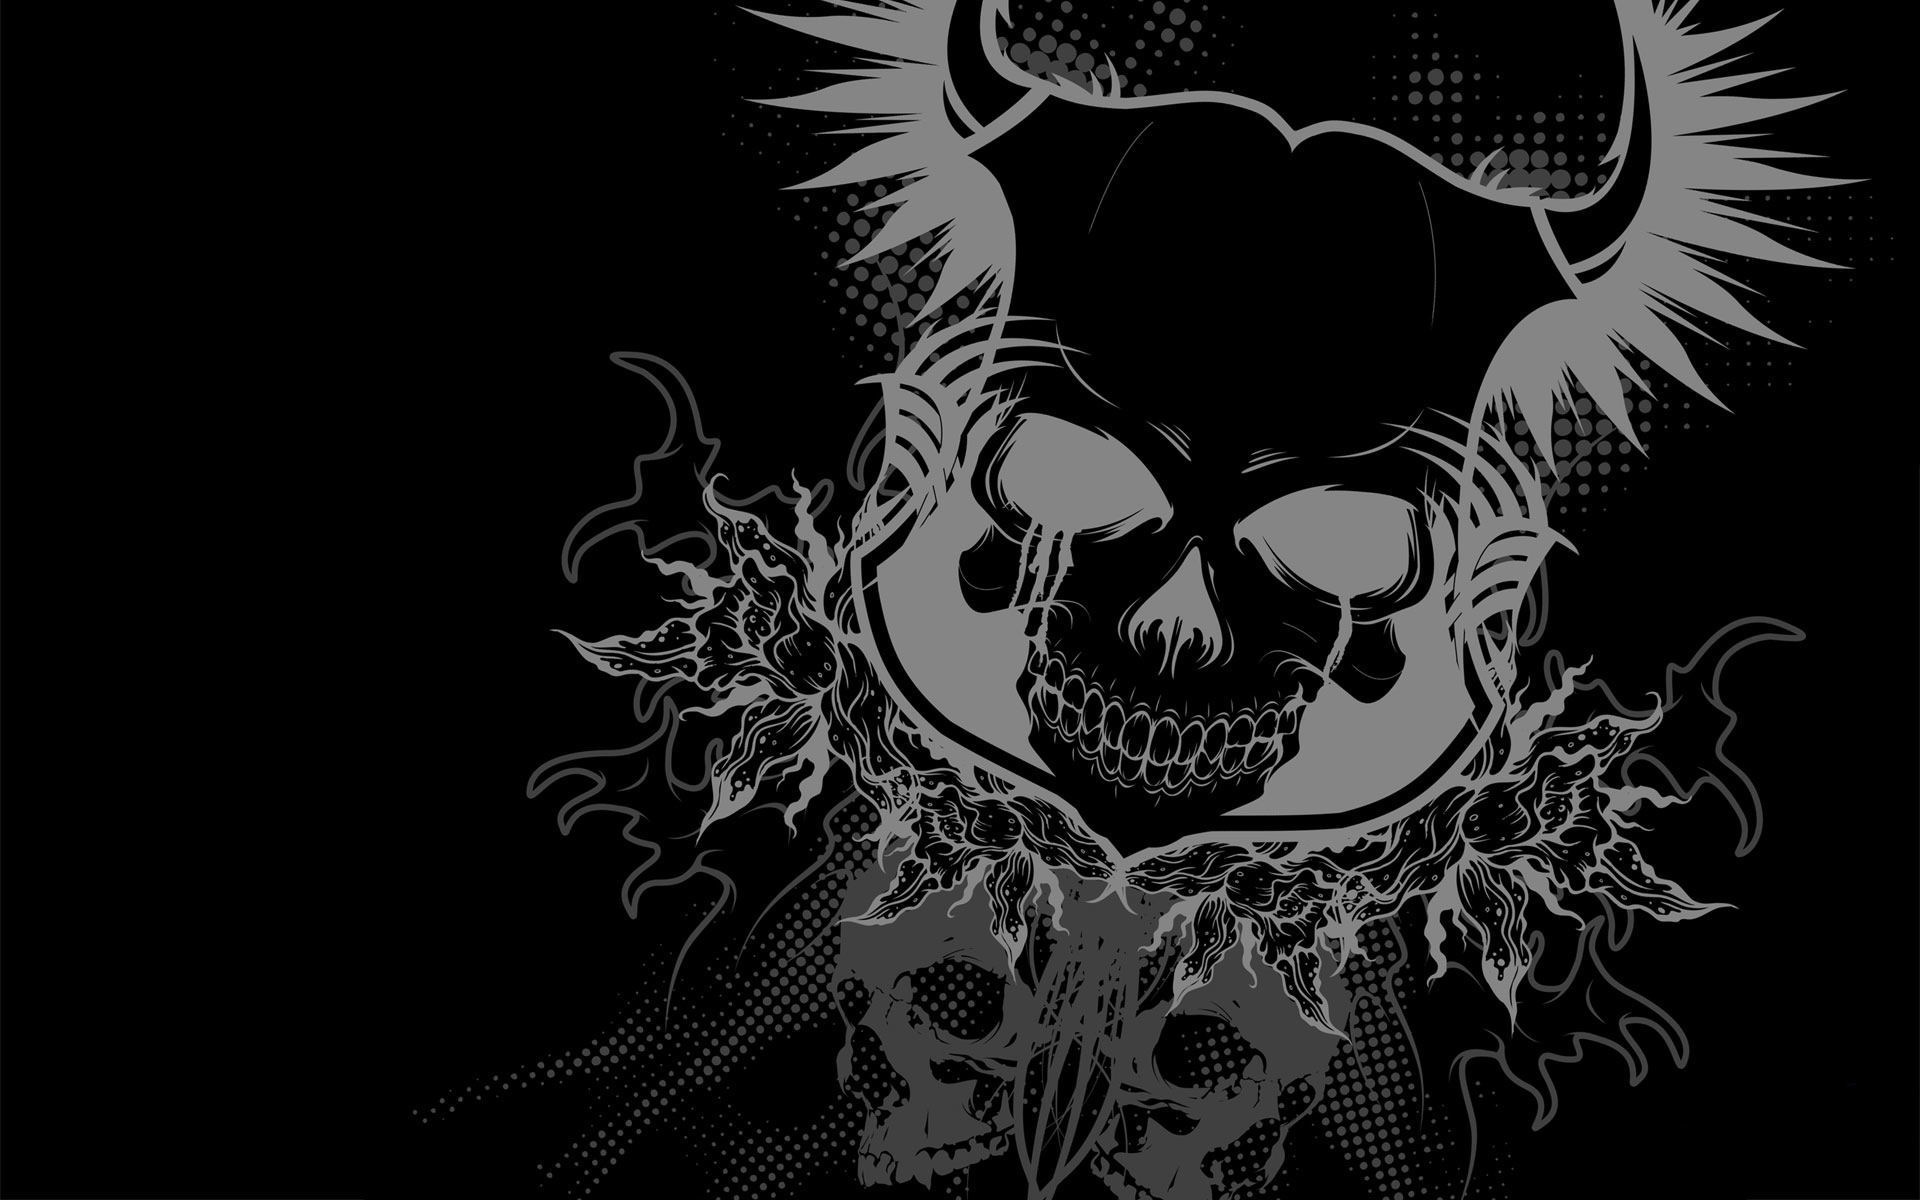 Devil evil wallpapers wallpapersafari - Devil skull wallpaper ...